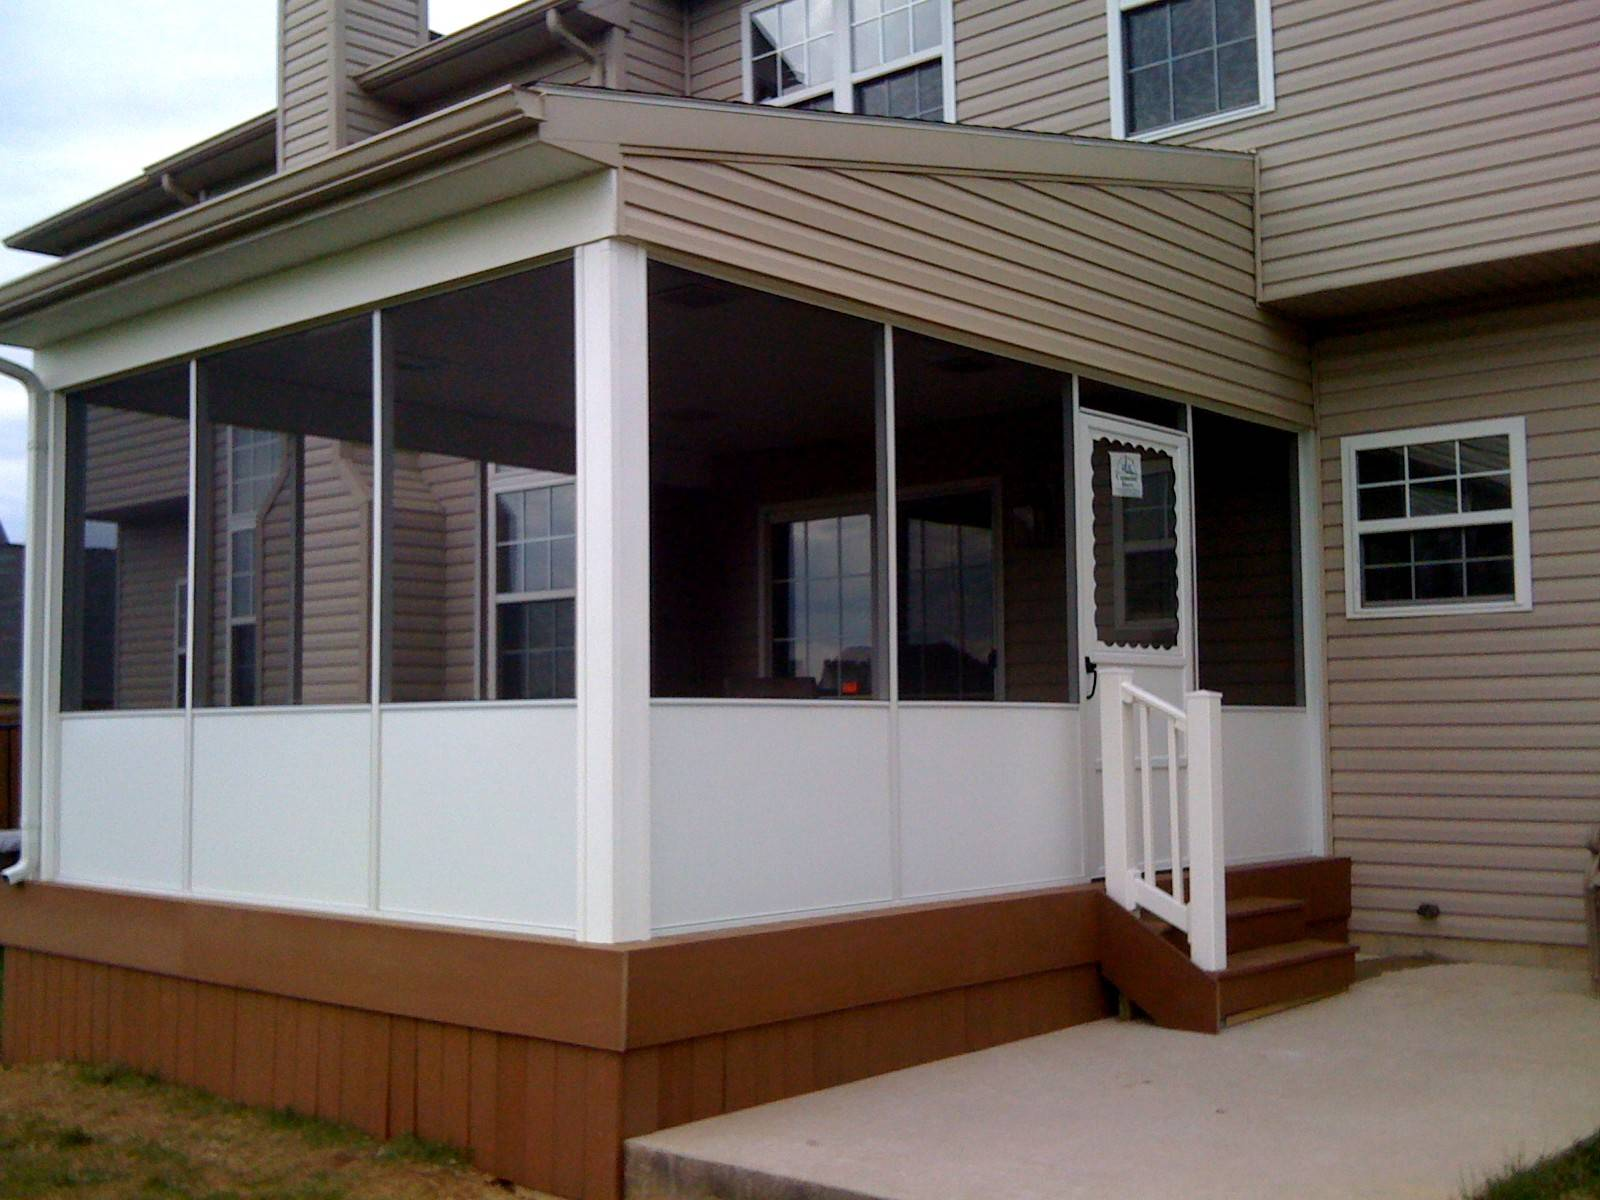 New roof, deck and screen room